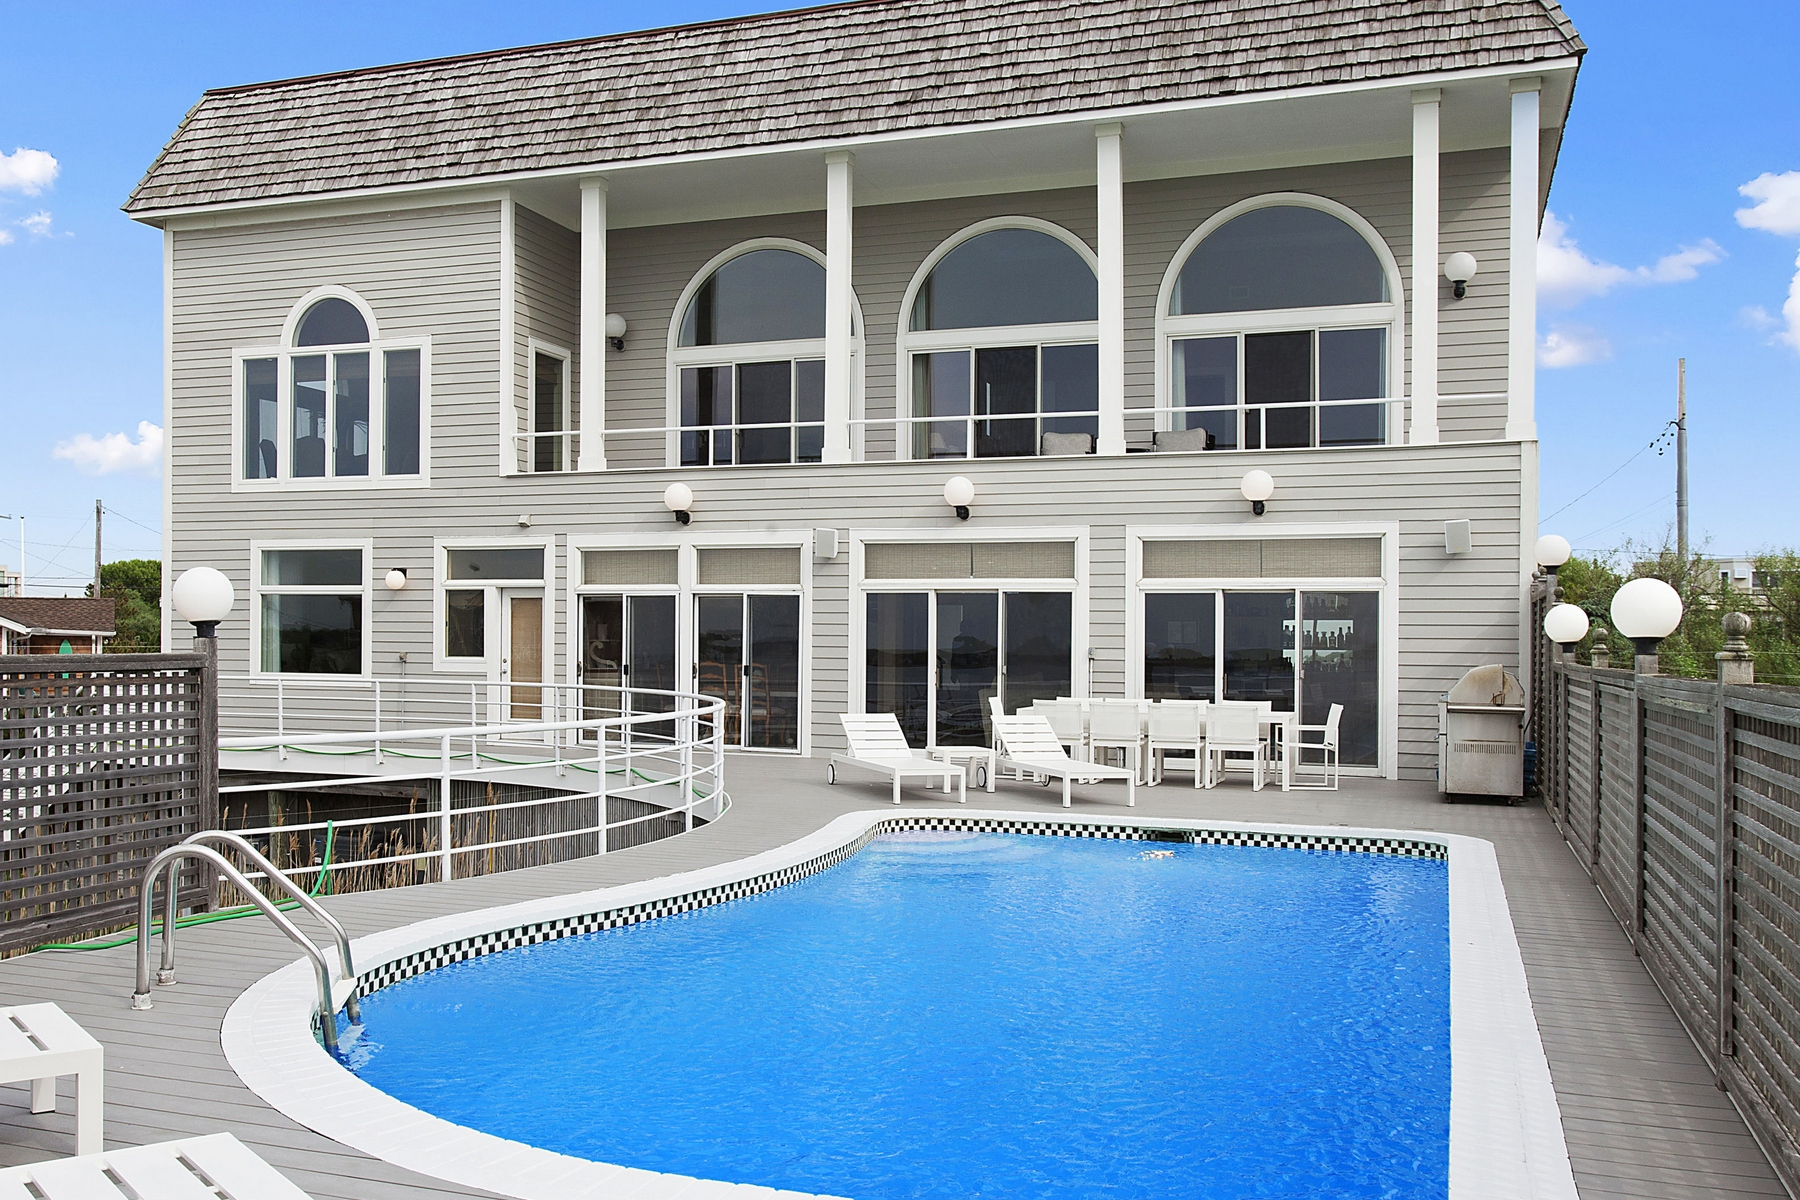 Single Family Home for Sale at Fantantic Location -Dune Road 364 Dune Road Westhampton Beach, New York 11978 United States